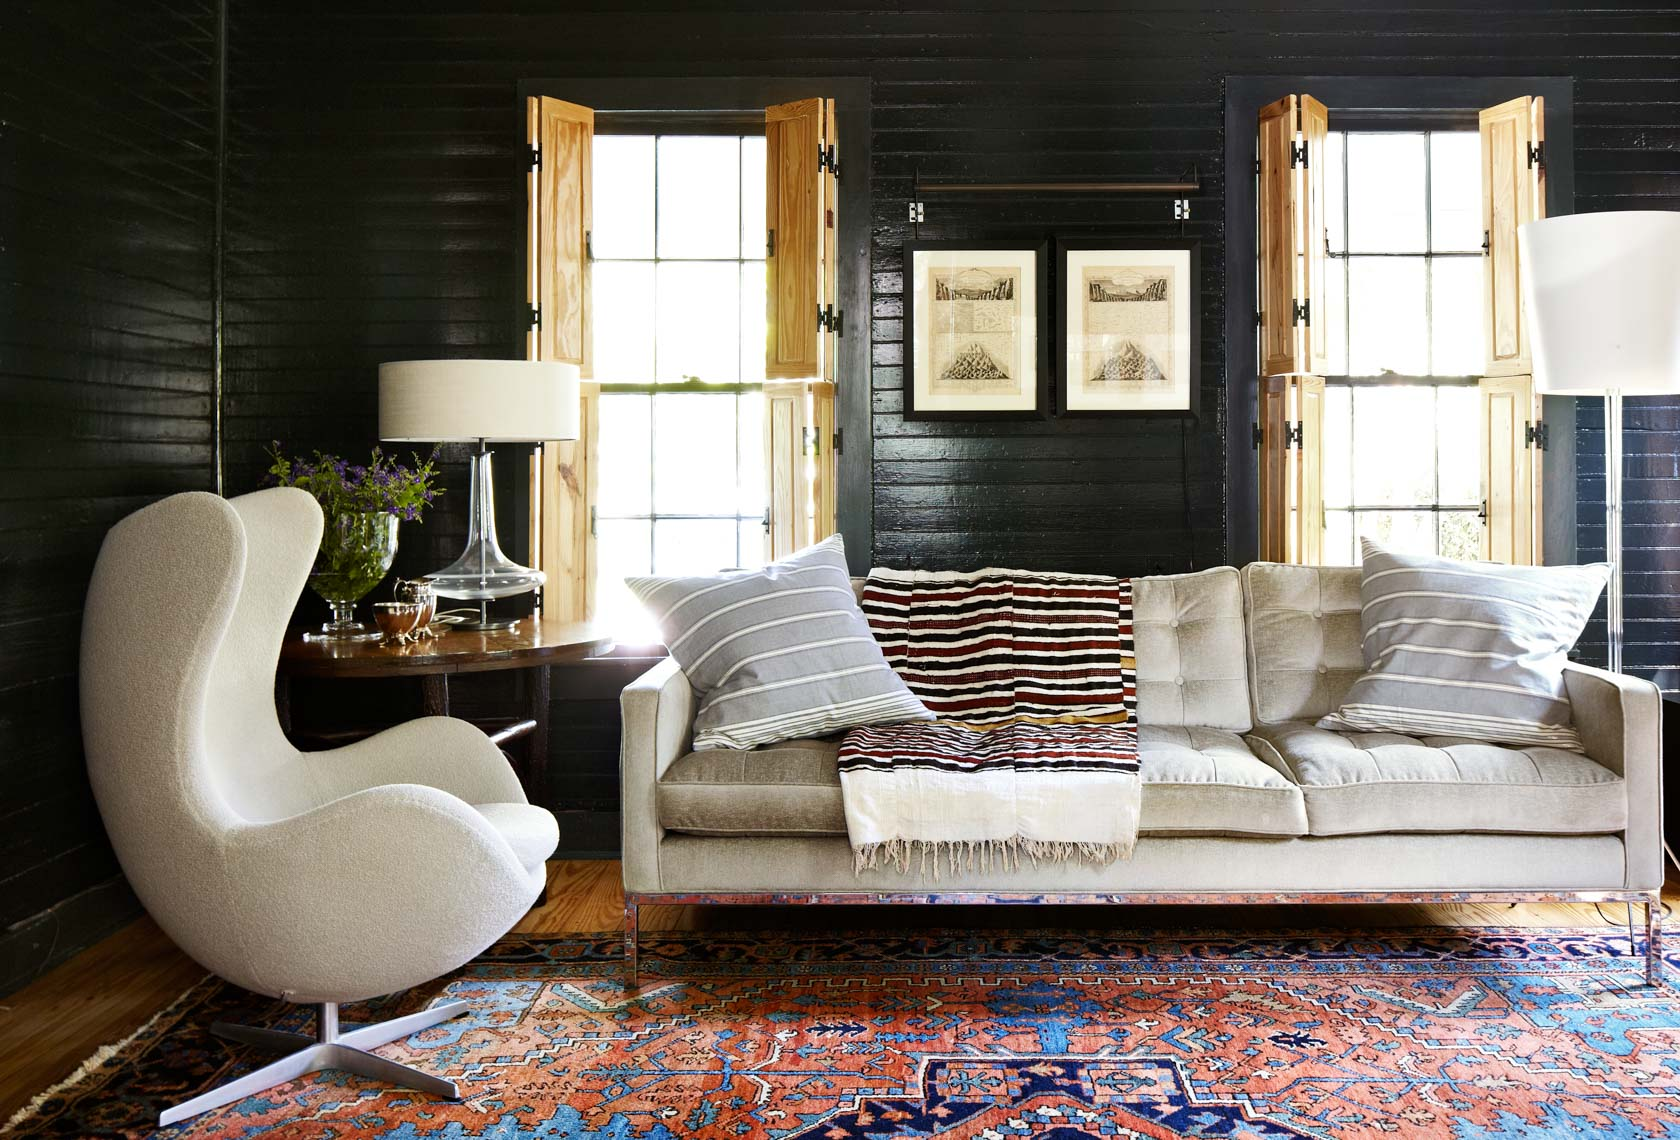 alec-hemer-photography-cuppett-rustic-chic-living-room-cropped